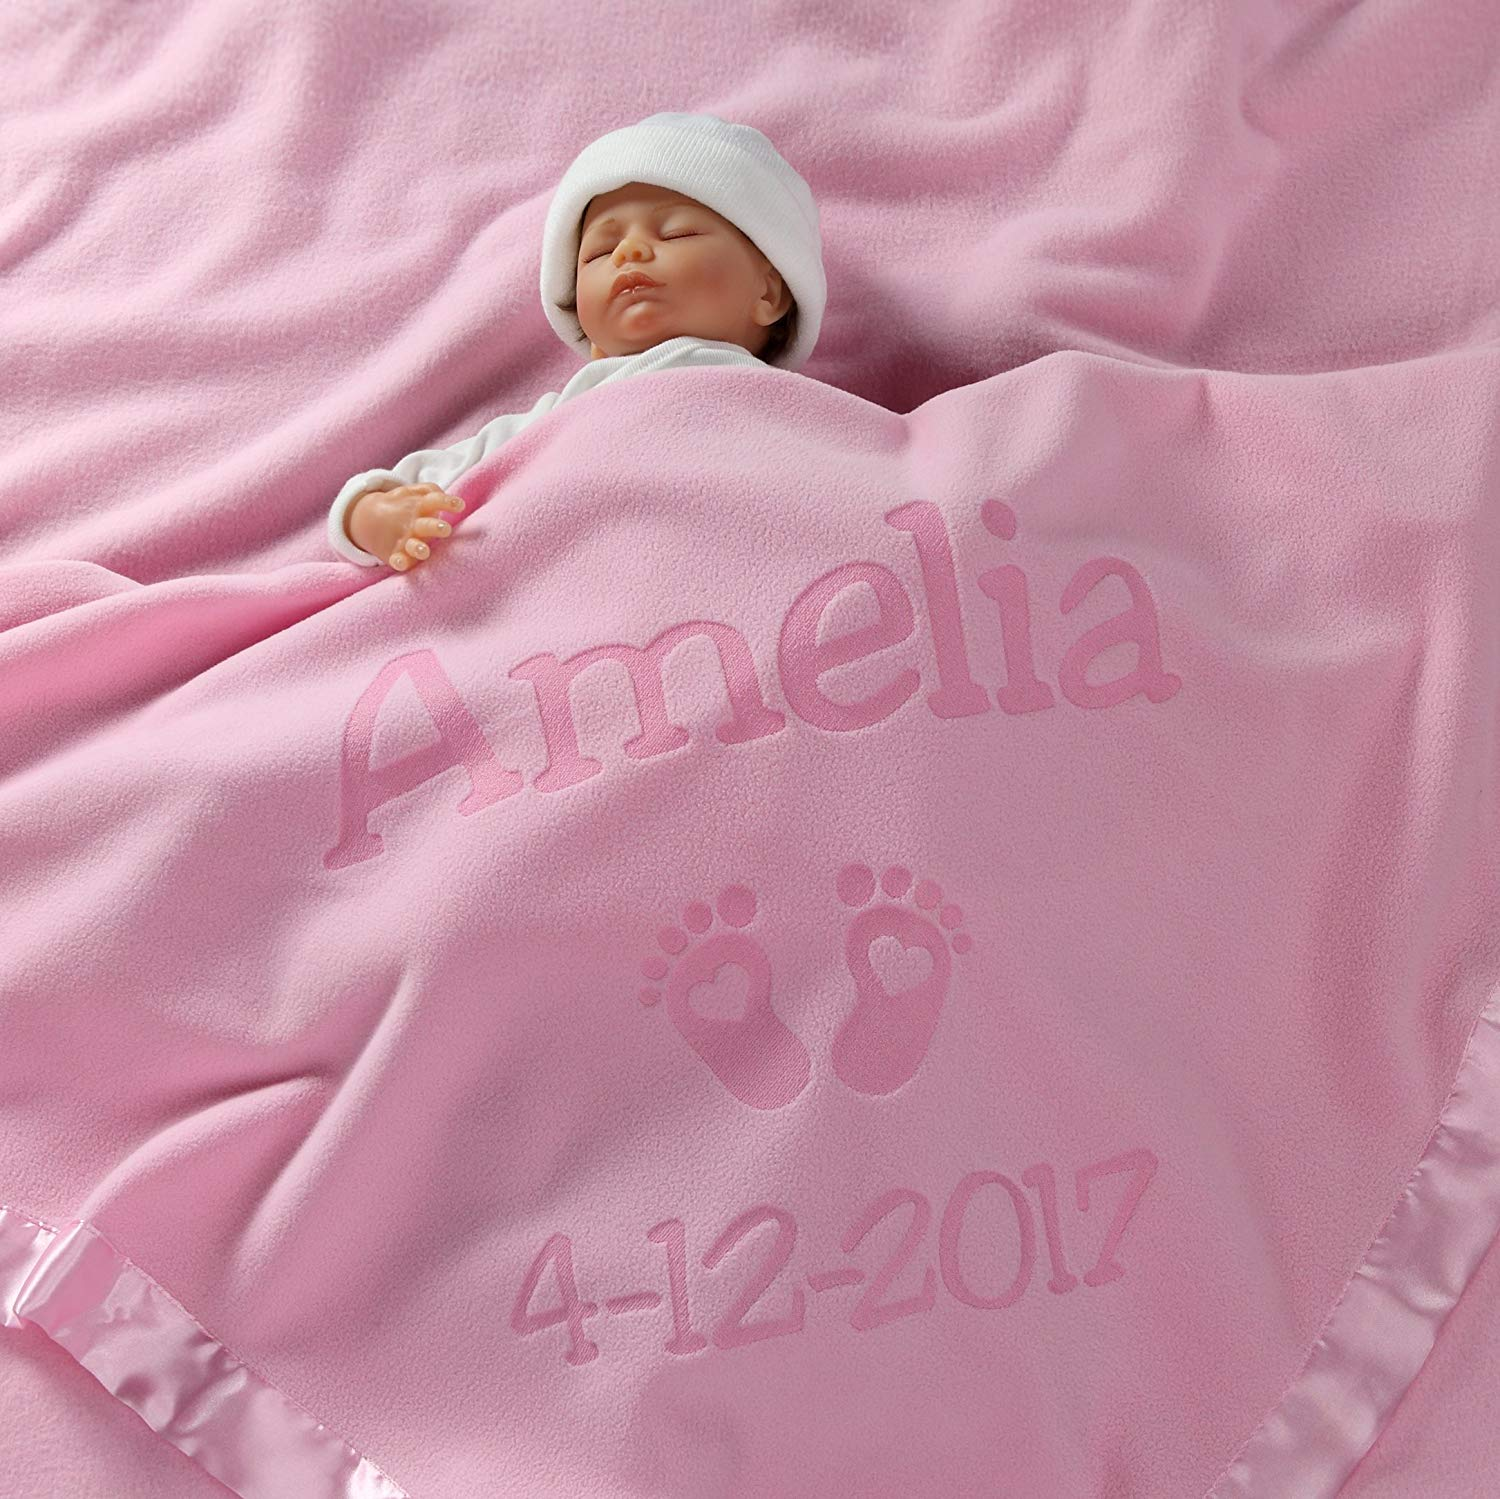 Personalized Newborn Gifts for Baby - baby blankets